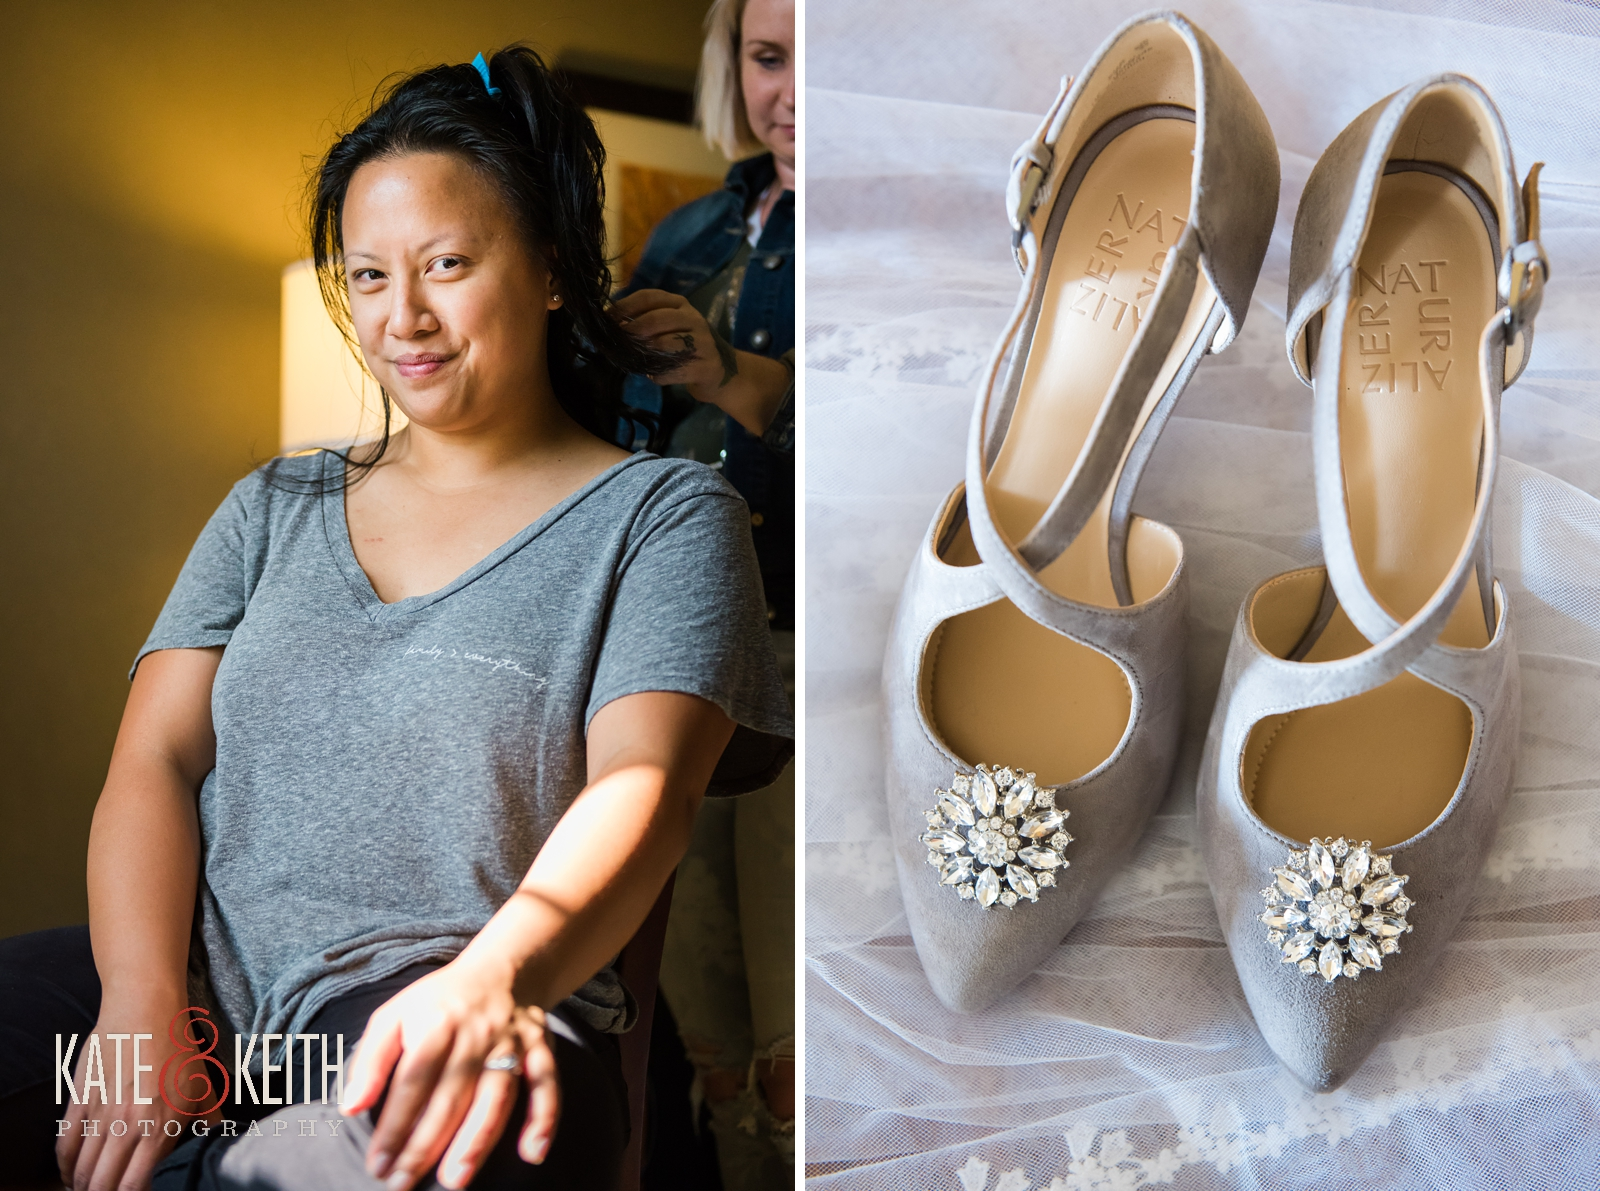 wedding weekend, Jackson, New Hampshire, Whitney's Inn, getting ready, wedding photographers, weekend events, outdoor wedding, comfortable wedding shoes, wedding gown by Jewel, autumn wedding, fall wedding, mountain wedding, weekend wedding